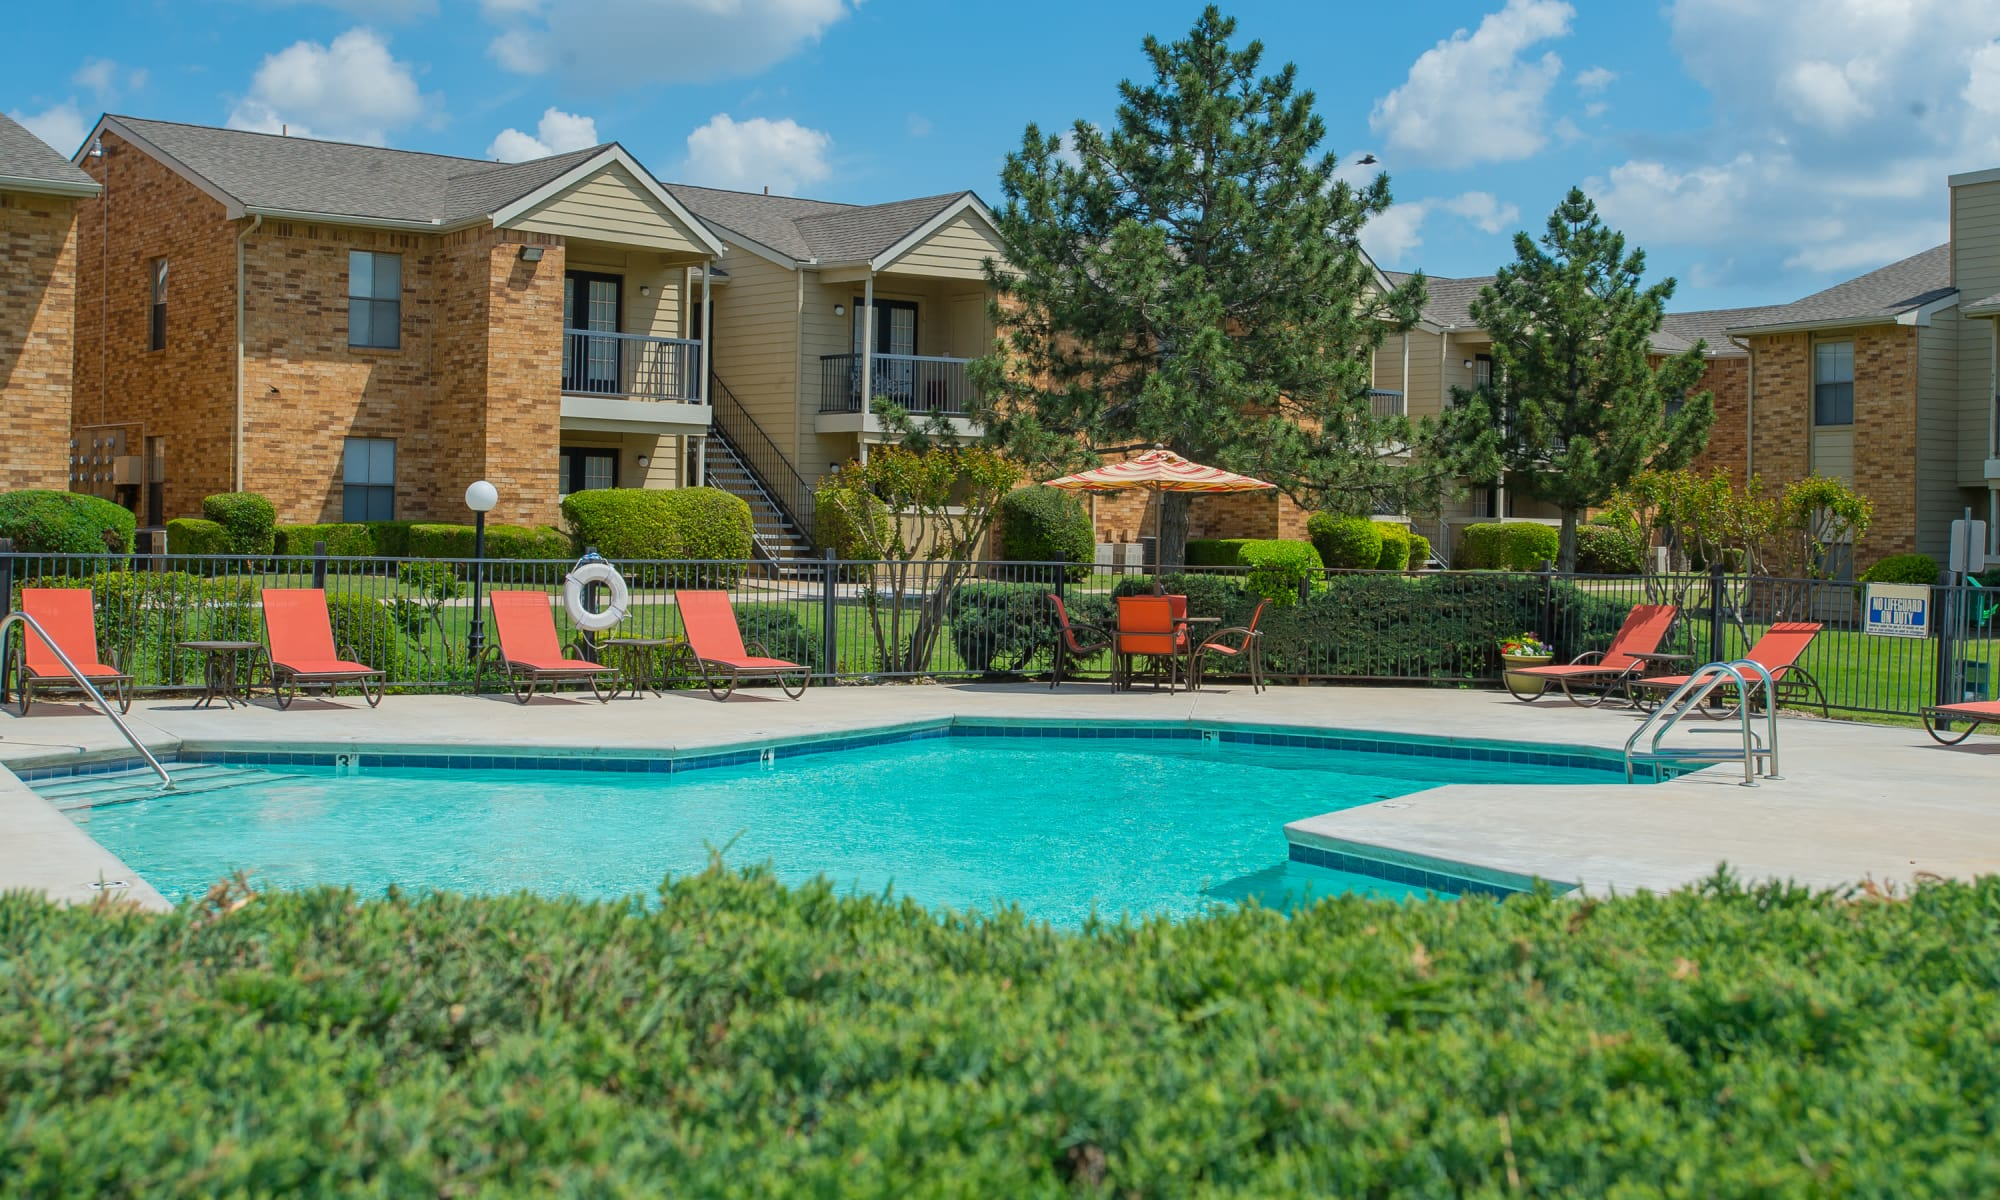 Cimarron Trails Apartments in Norman, Oklahoma